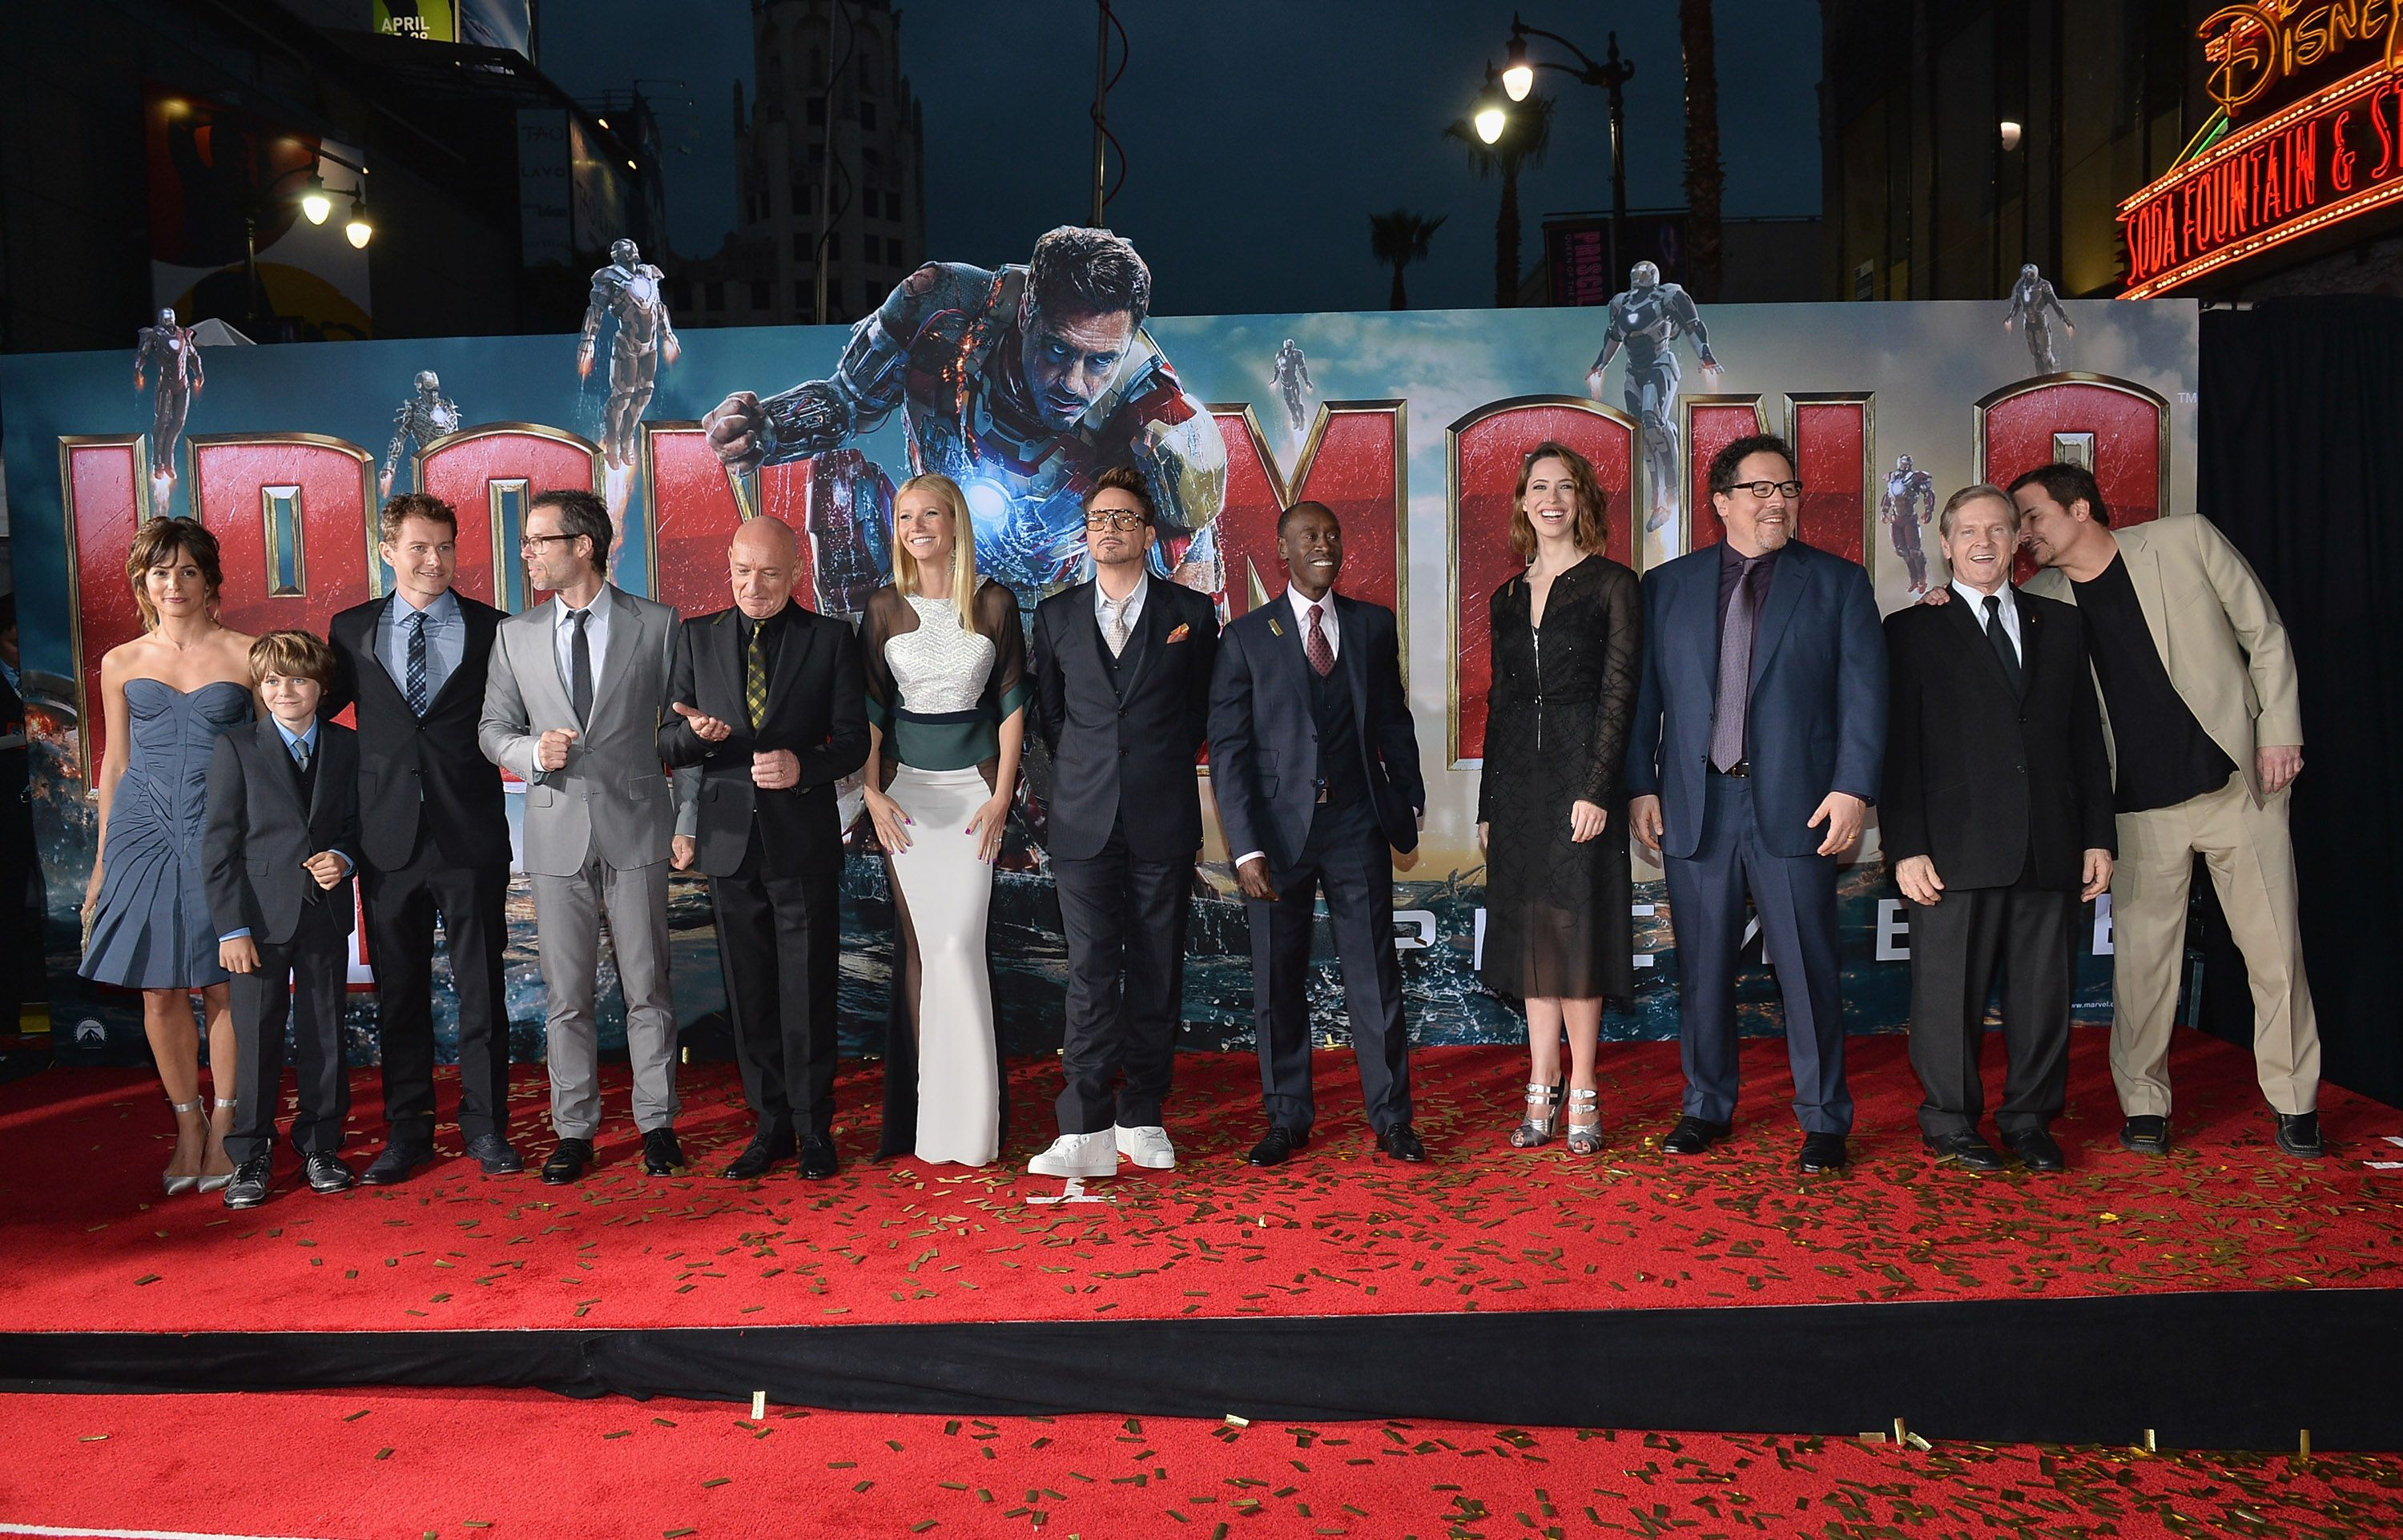 The Cast And Crew Of Marvel S Iron Man 3 On Stage During The World Premiere In Hollywood Http Marvel Com Ironman3live Iron Man Movie Iron Man Premiere